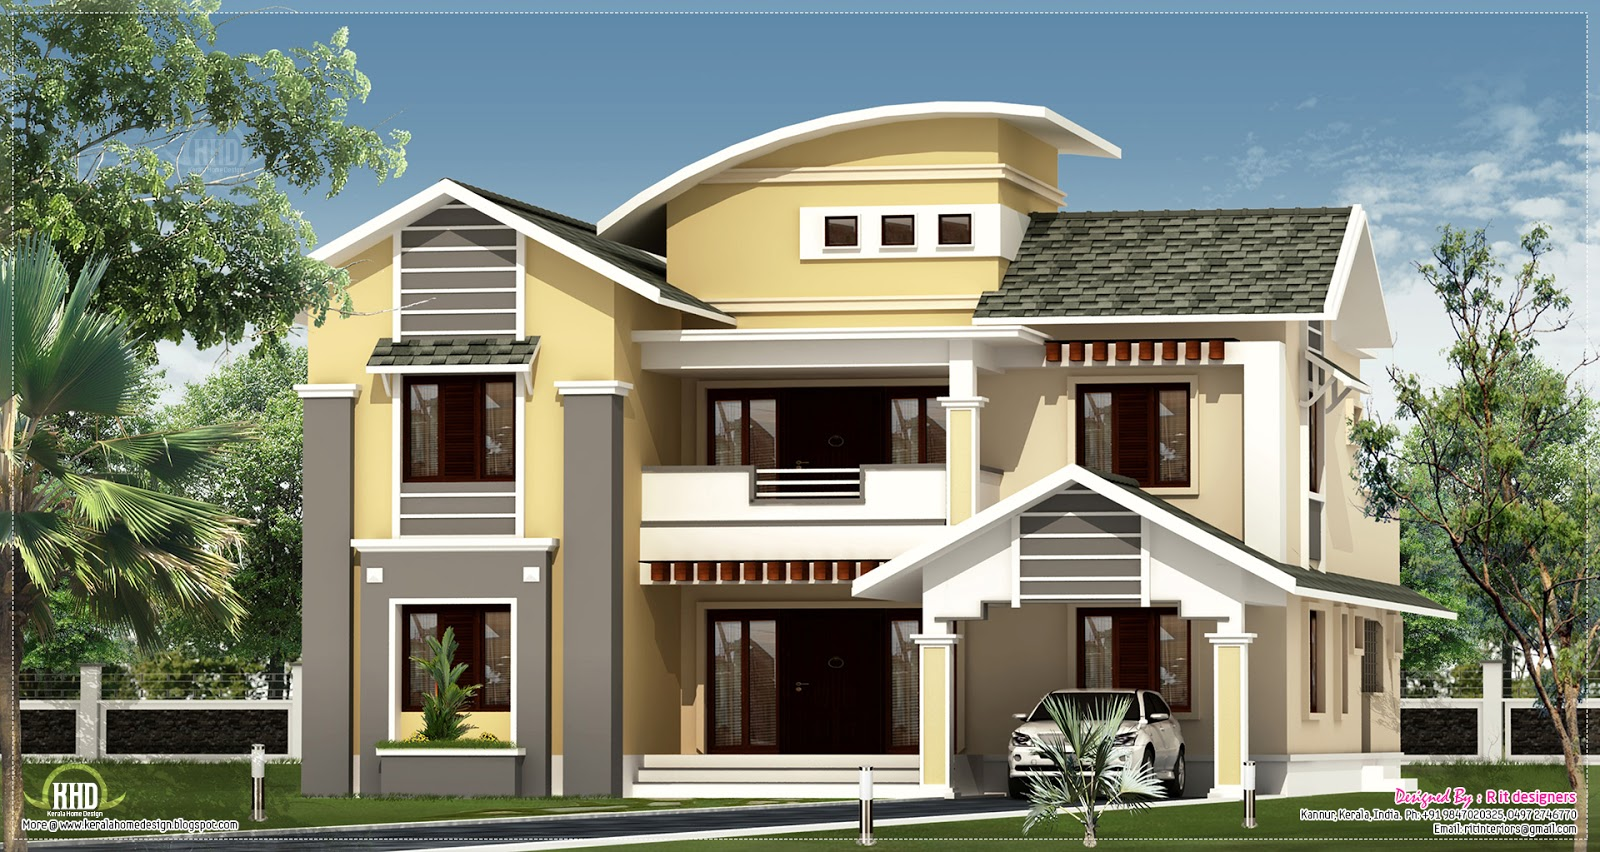 3000 home design from kannur kerala kerala home